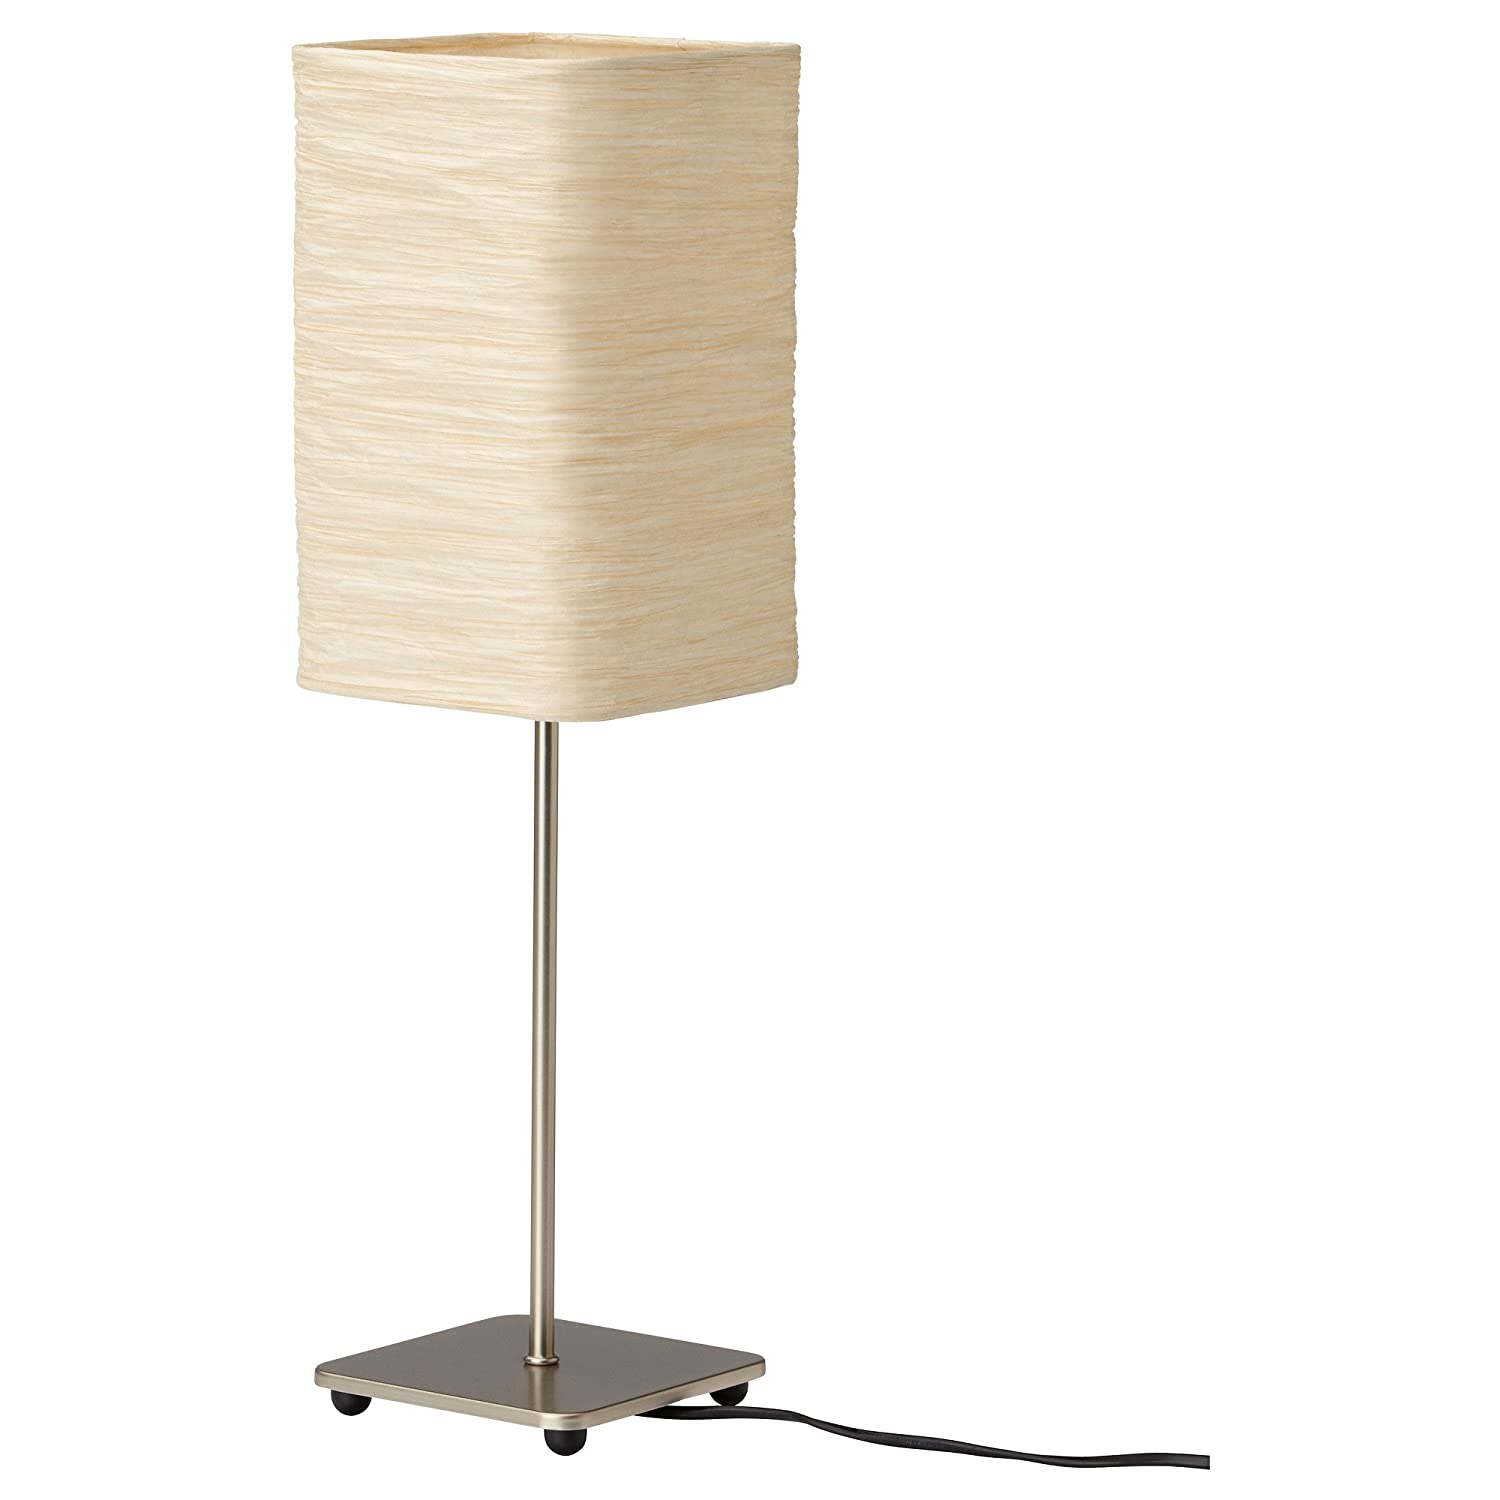 Ikea Aspelund Garderobekast Handleiding ~   Lamp Amazon Com Ikea 703 011 89 Magnarp Table Lamp 14 Natural And